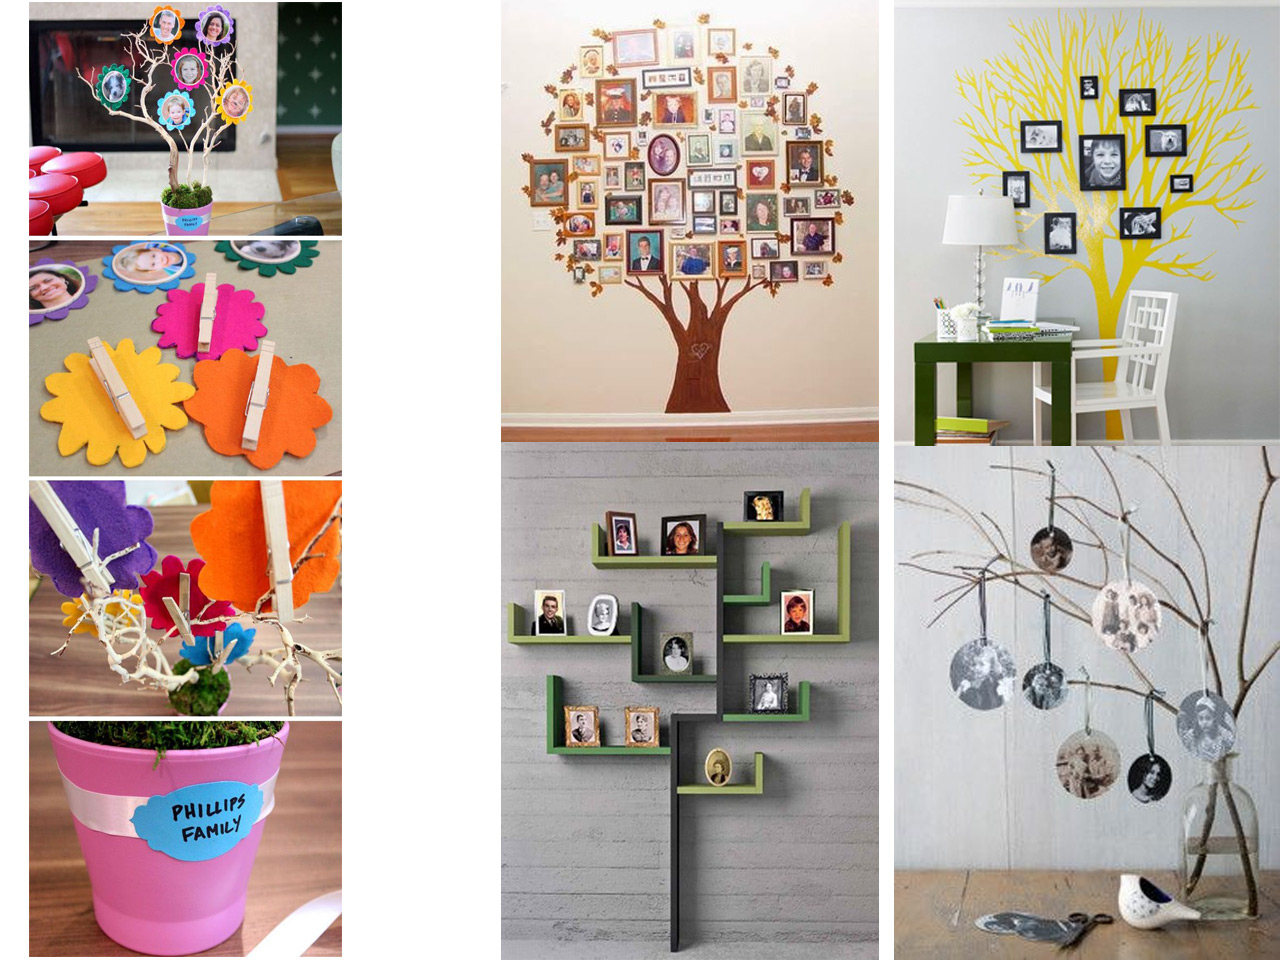 Como Decorar Una Pared Con Fotos 60 Brillantes Ideas Para Decorar Con Fotos Familiares